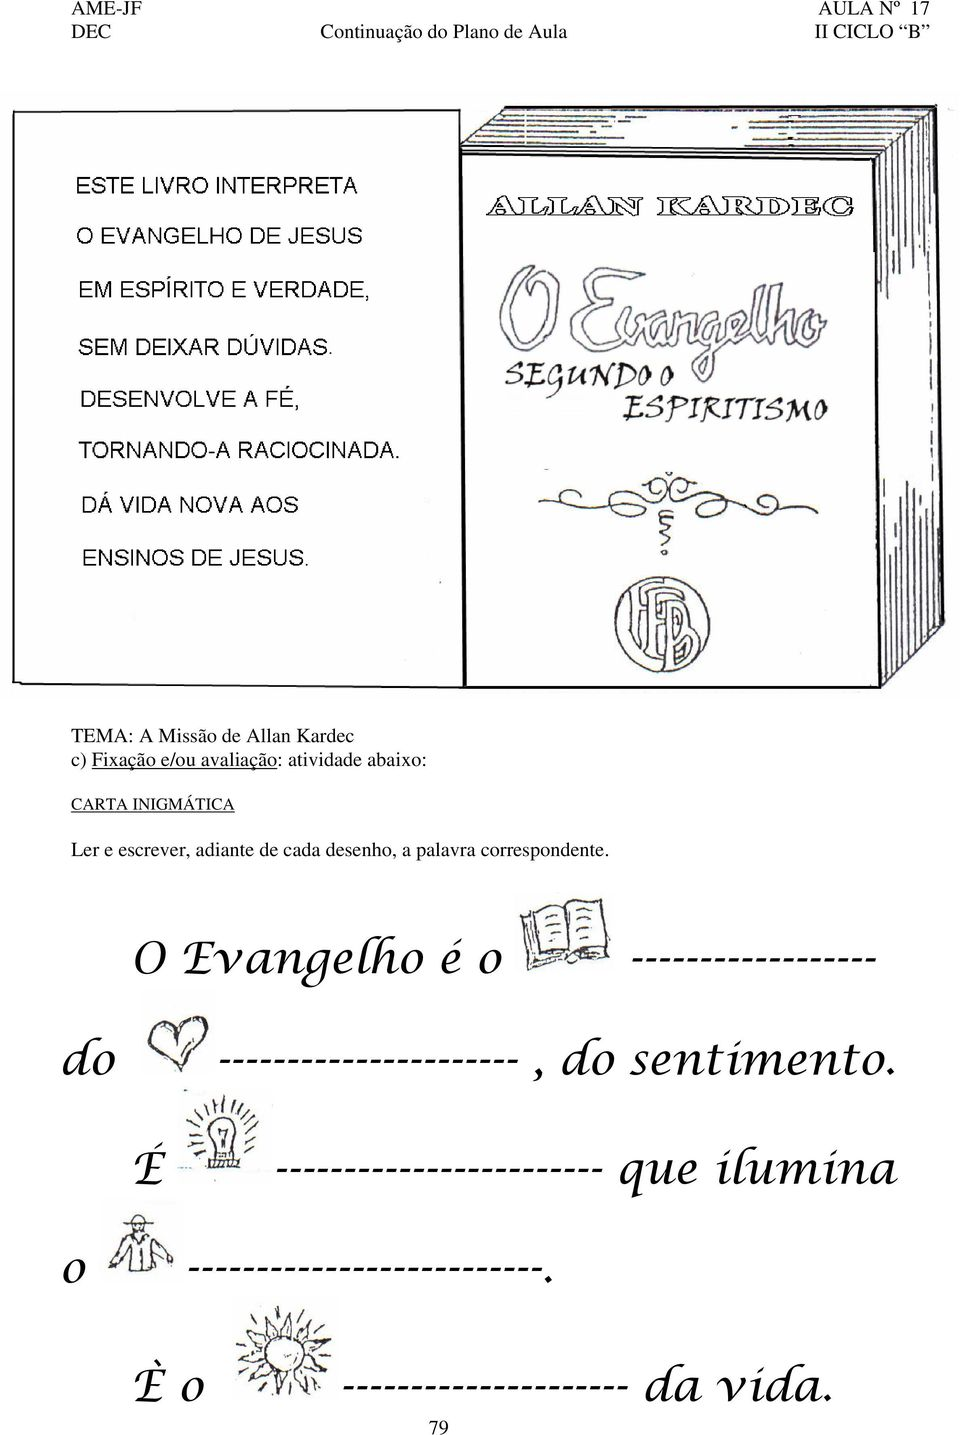 O Evangelho é o ------------------ do ----------------------, do sentimento.